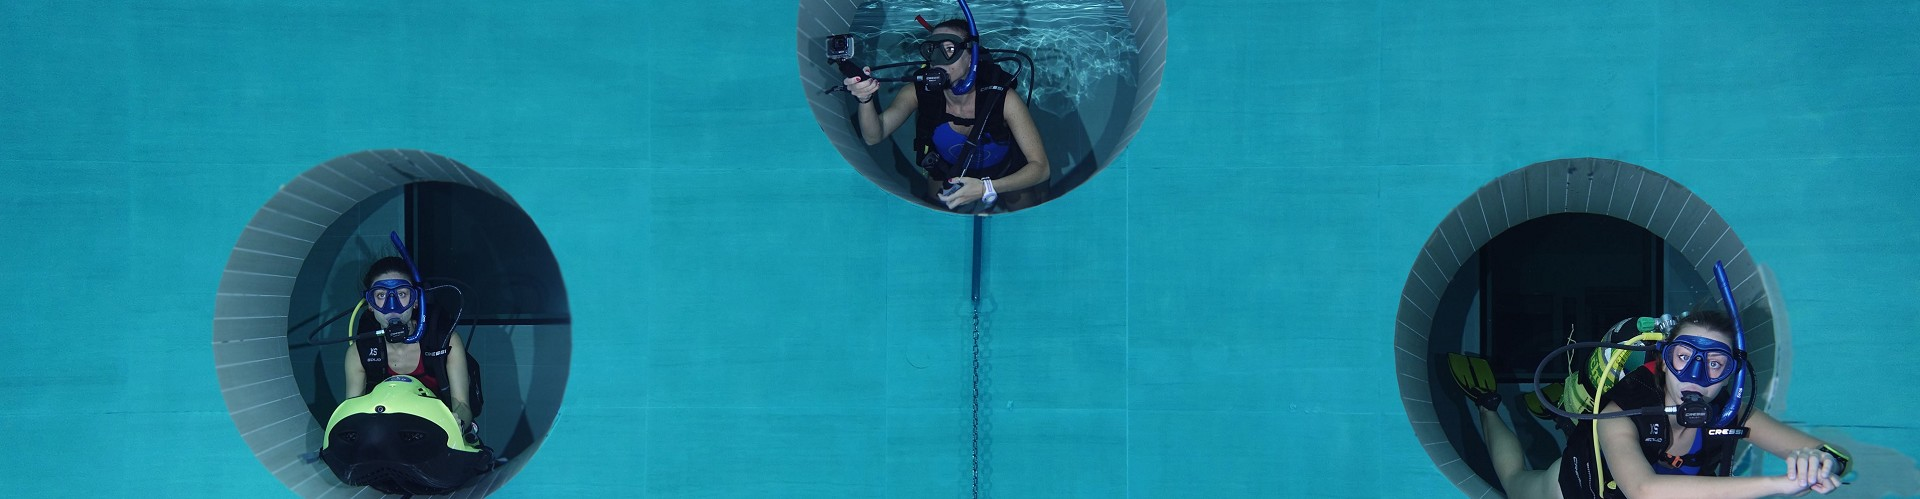 Y-40 The World's deepest pool